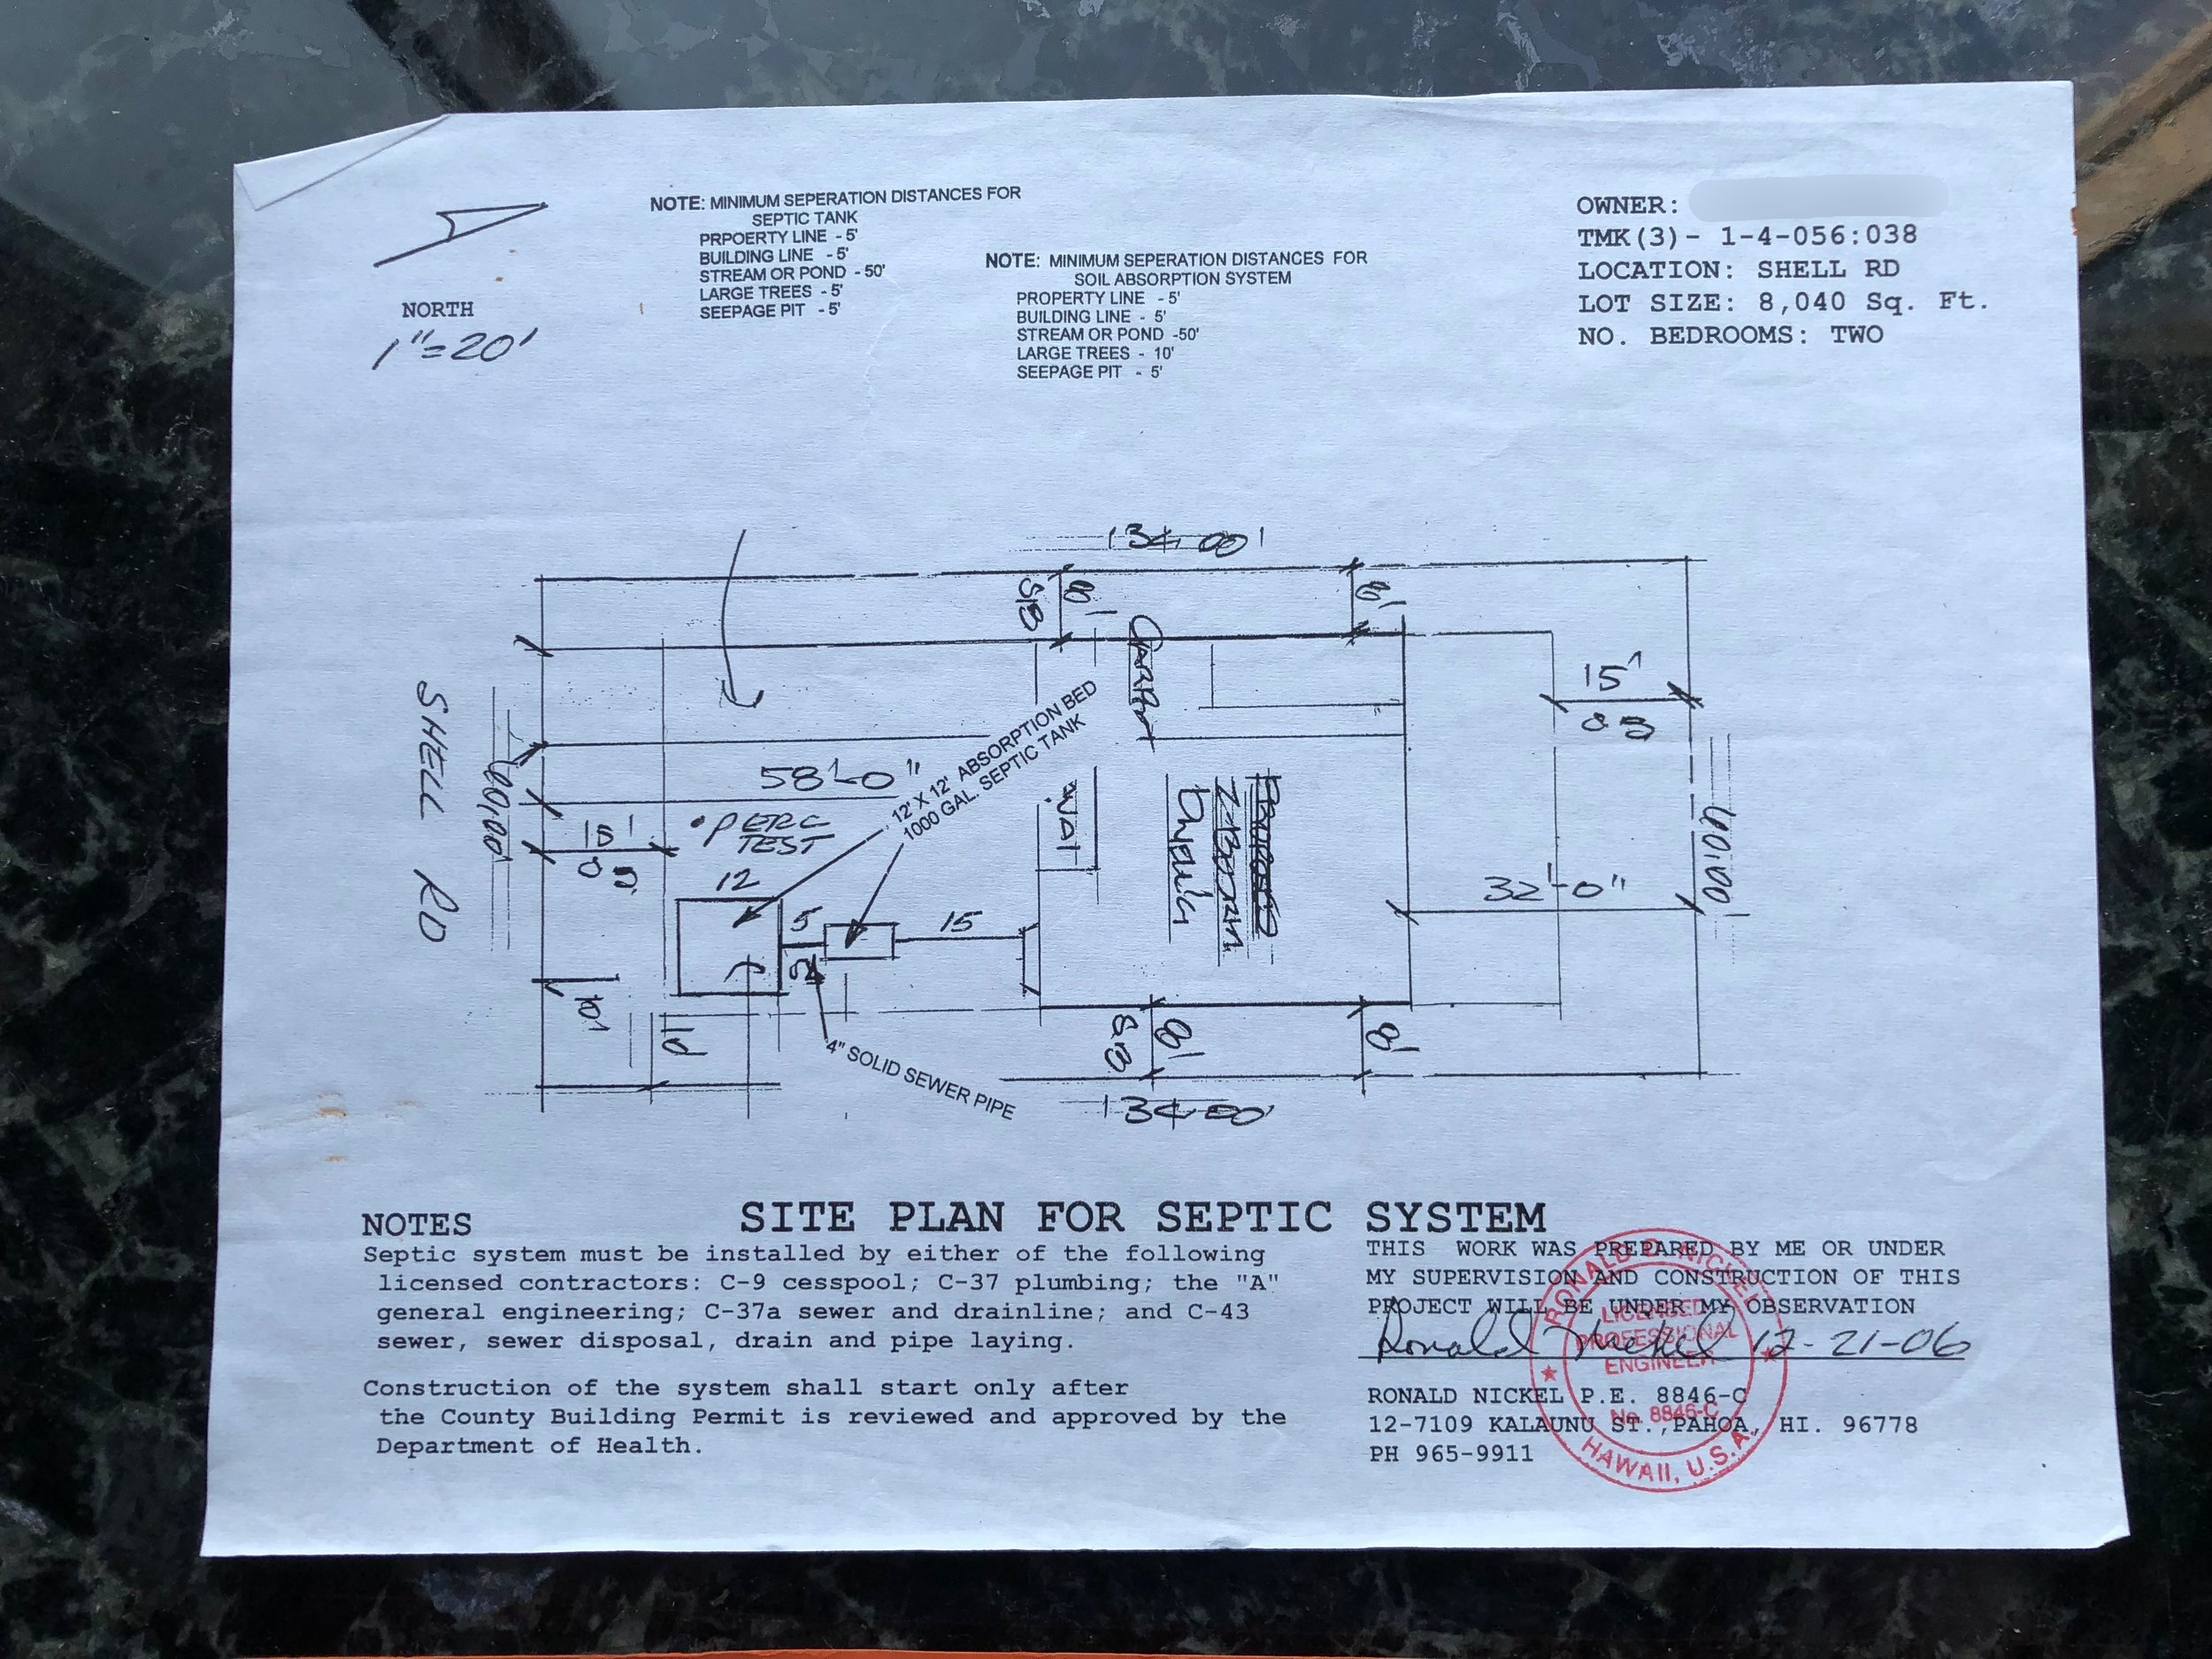 LAND EQUITIES — 14-3422 SHELL RD  BEAUTIFUL HAND CLEARED LOT WITH HOUSE  PLANS & WATER METER, PAHOA, HI